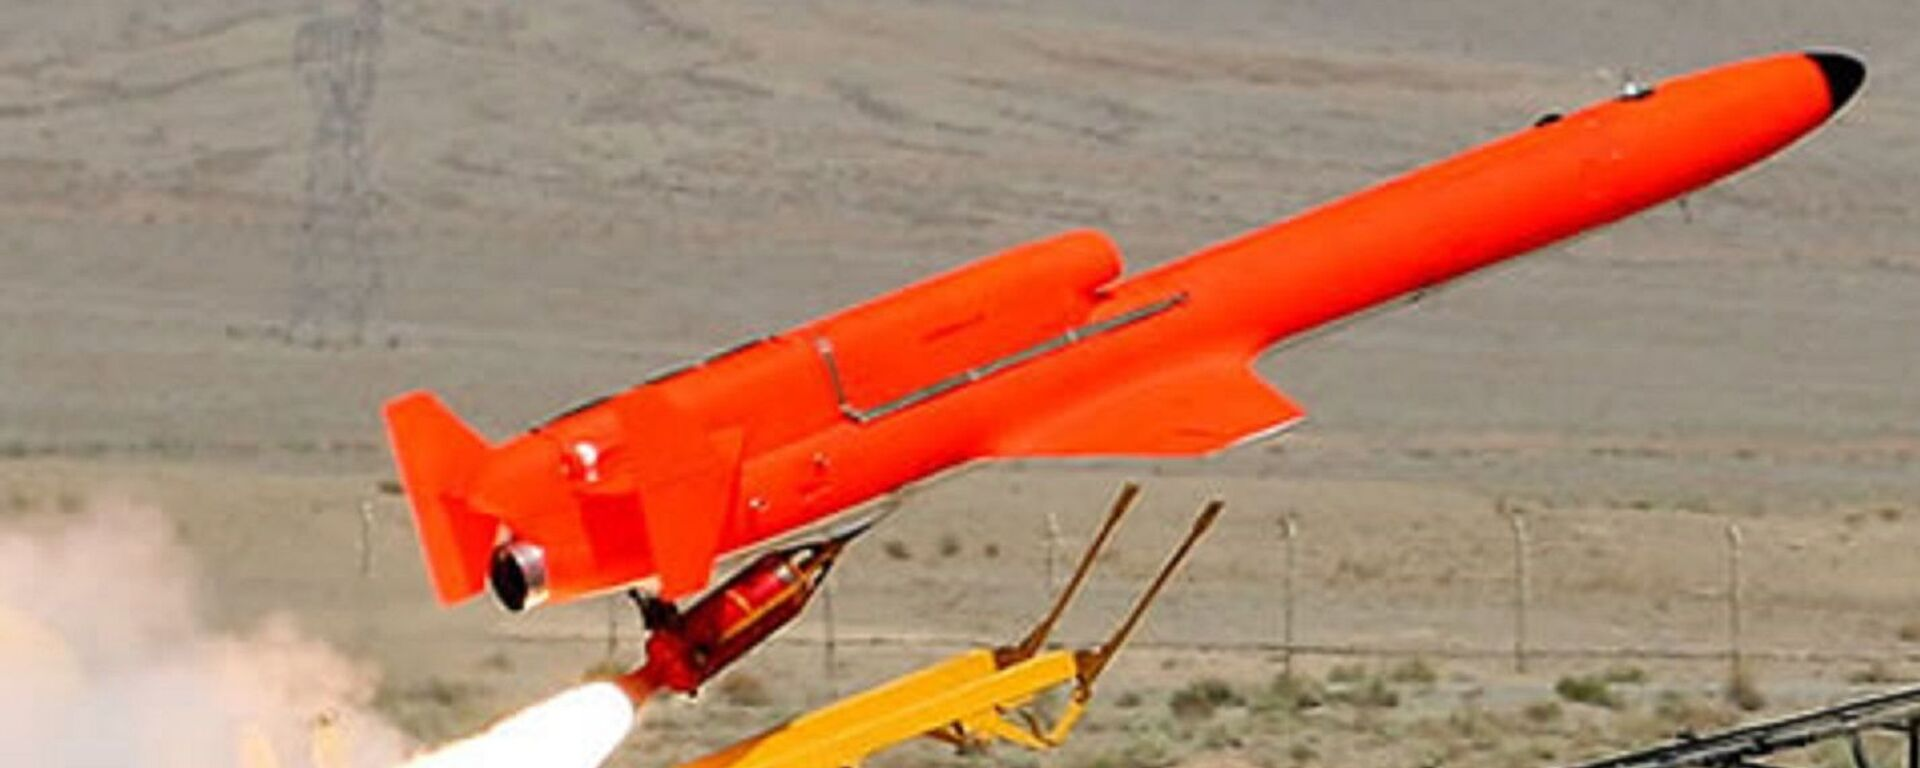 The Iranian jet powered drone Karrar launched by Rocket Assist Take-Off (RATO) booster, acceleratingh the vehicle from a stationary ground launcher. Karrar can also be launched from an aerial platform. - Sputnik International, 1920, 10.09.2021